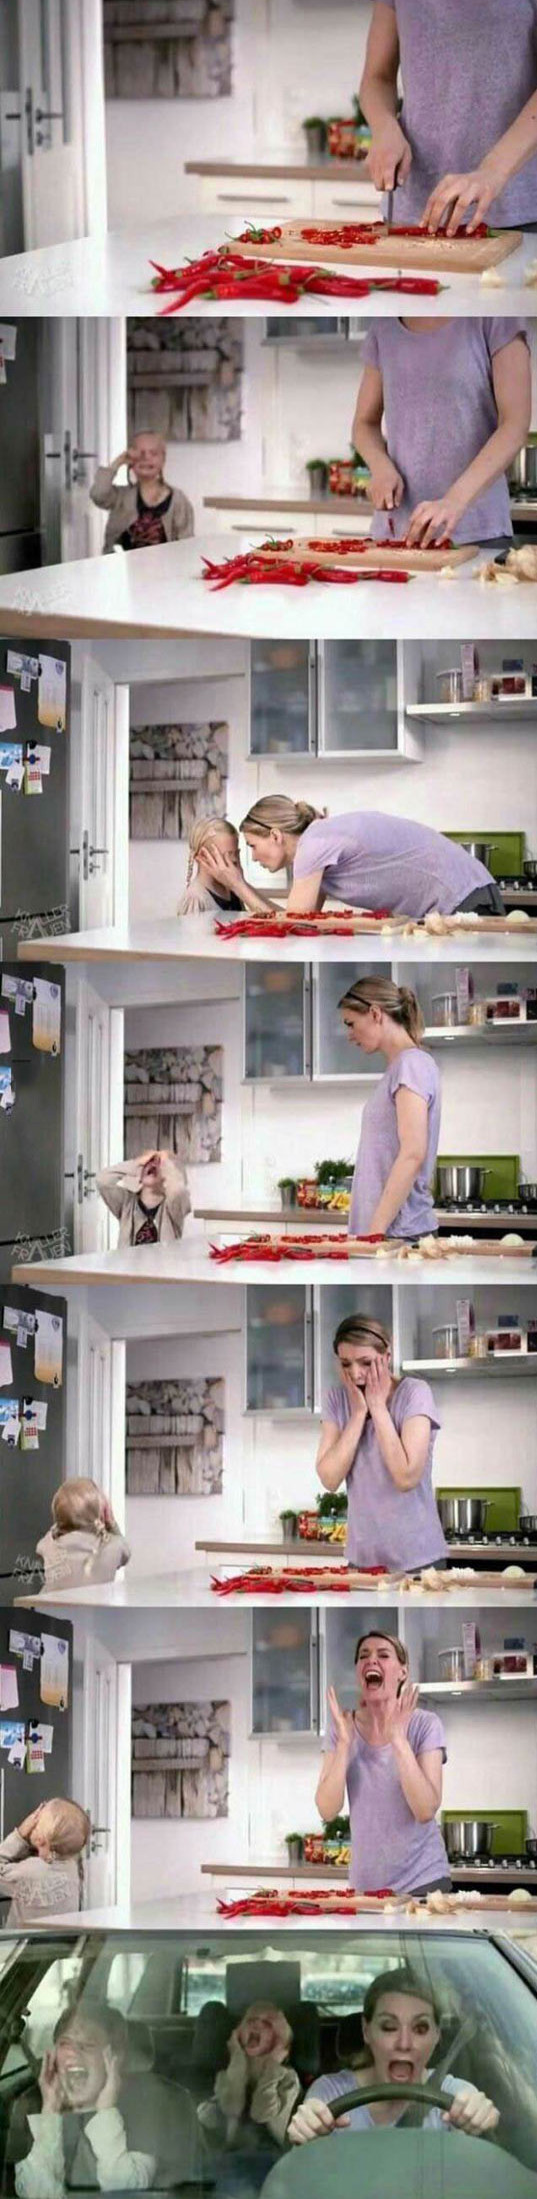 funny-mom-cutting-board-kitchen-daughter